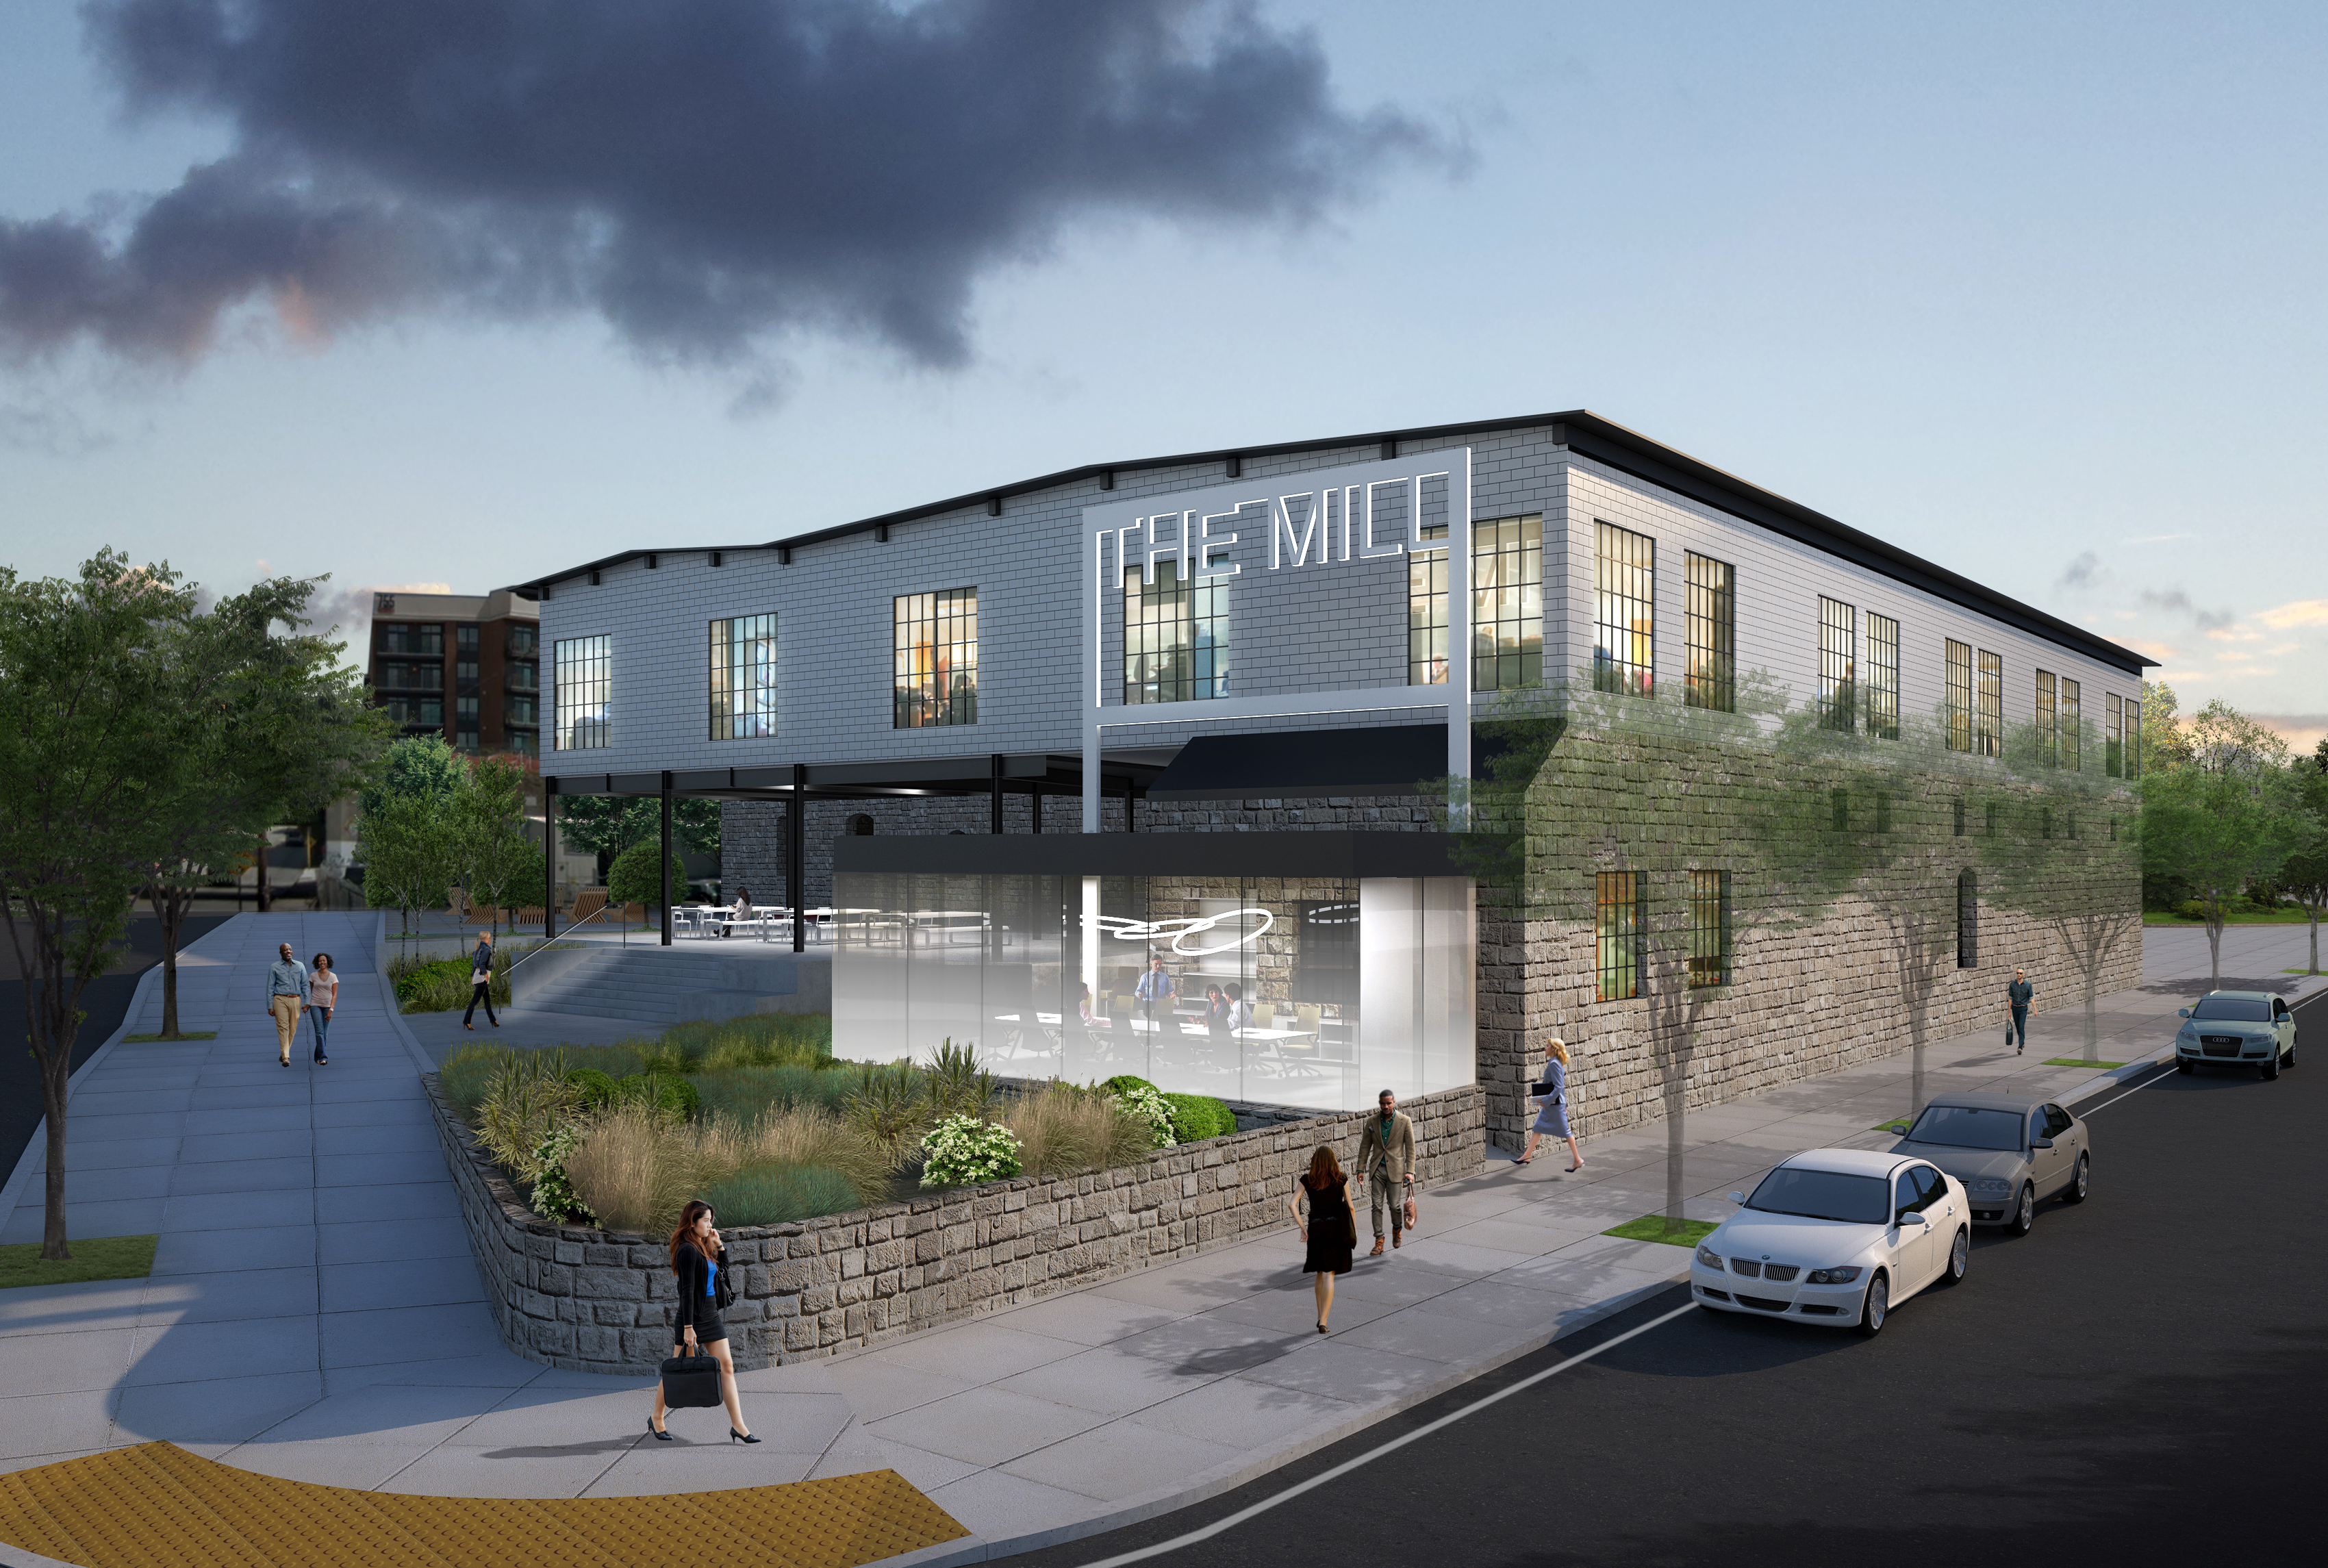 A rendering shows how the old buildings could be reimagined as office space.